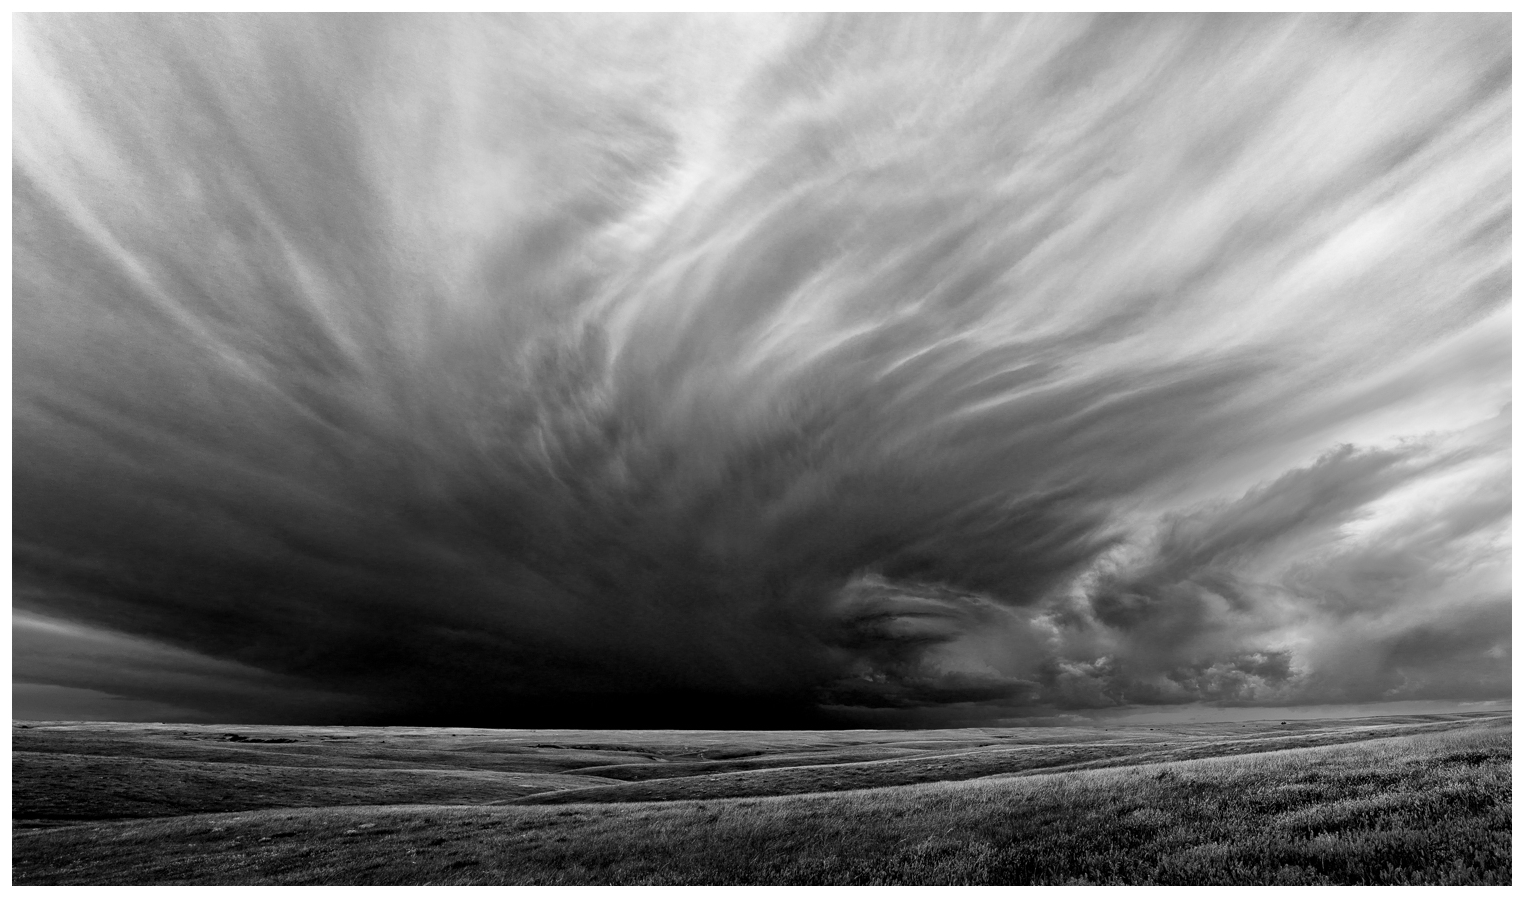 Building Storm, Jones County, South Dakota